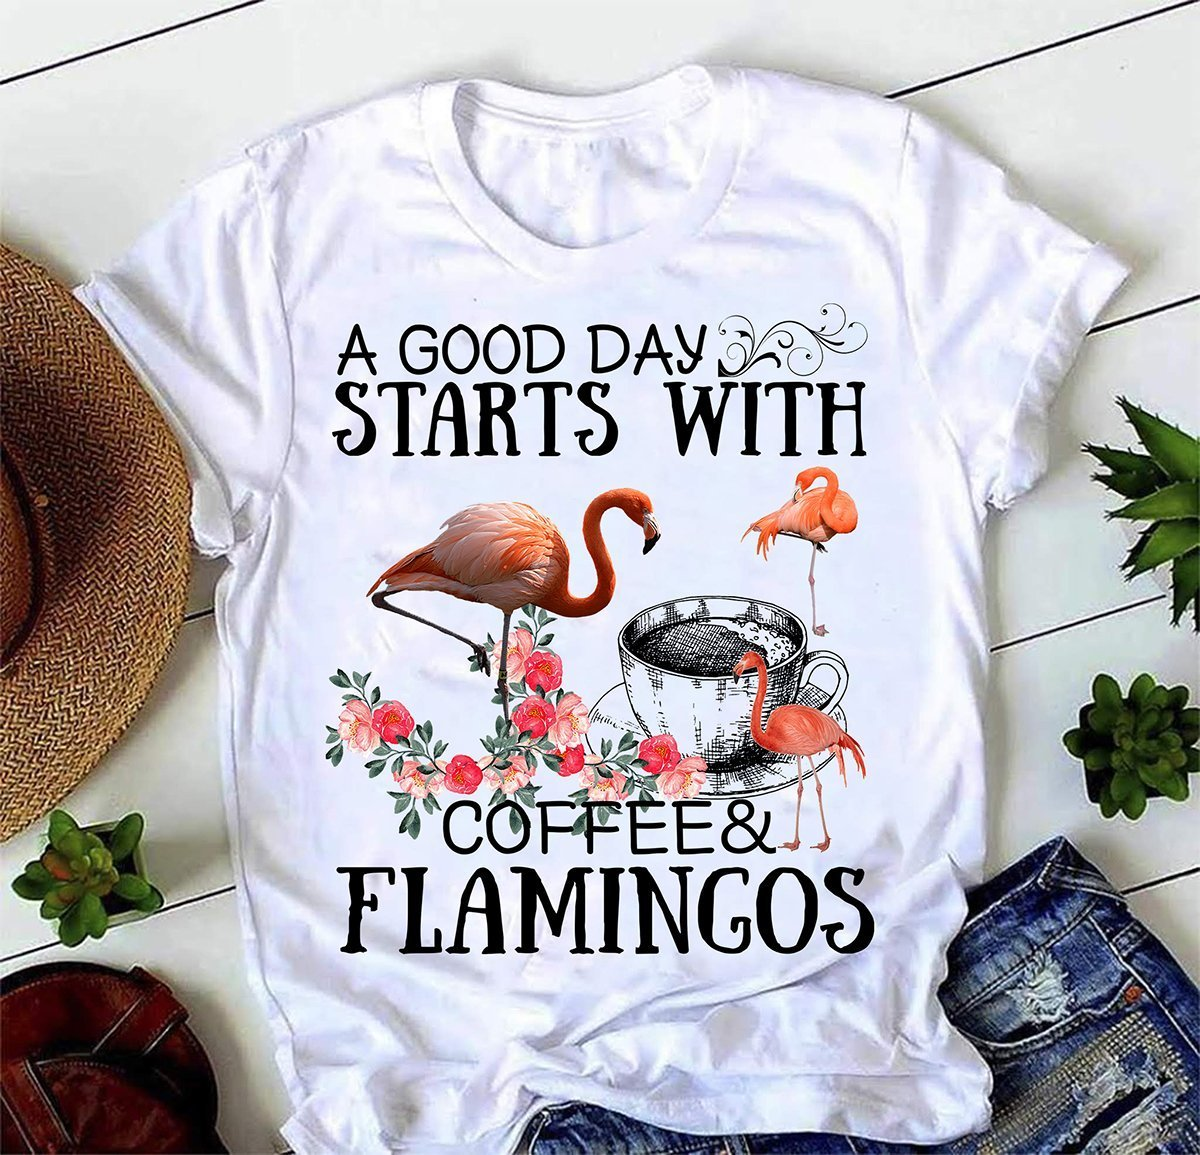 A Good Day Start With Coffee and Flamingo T-Shirt